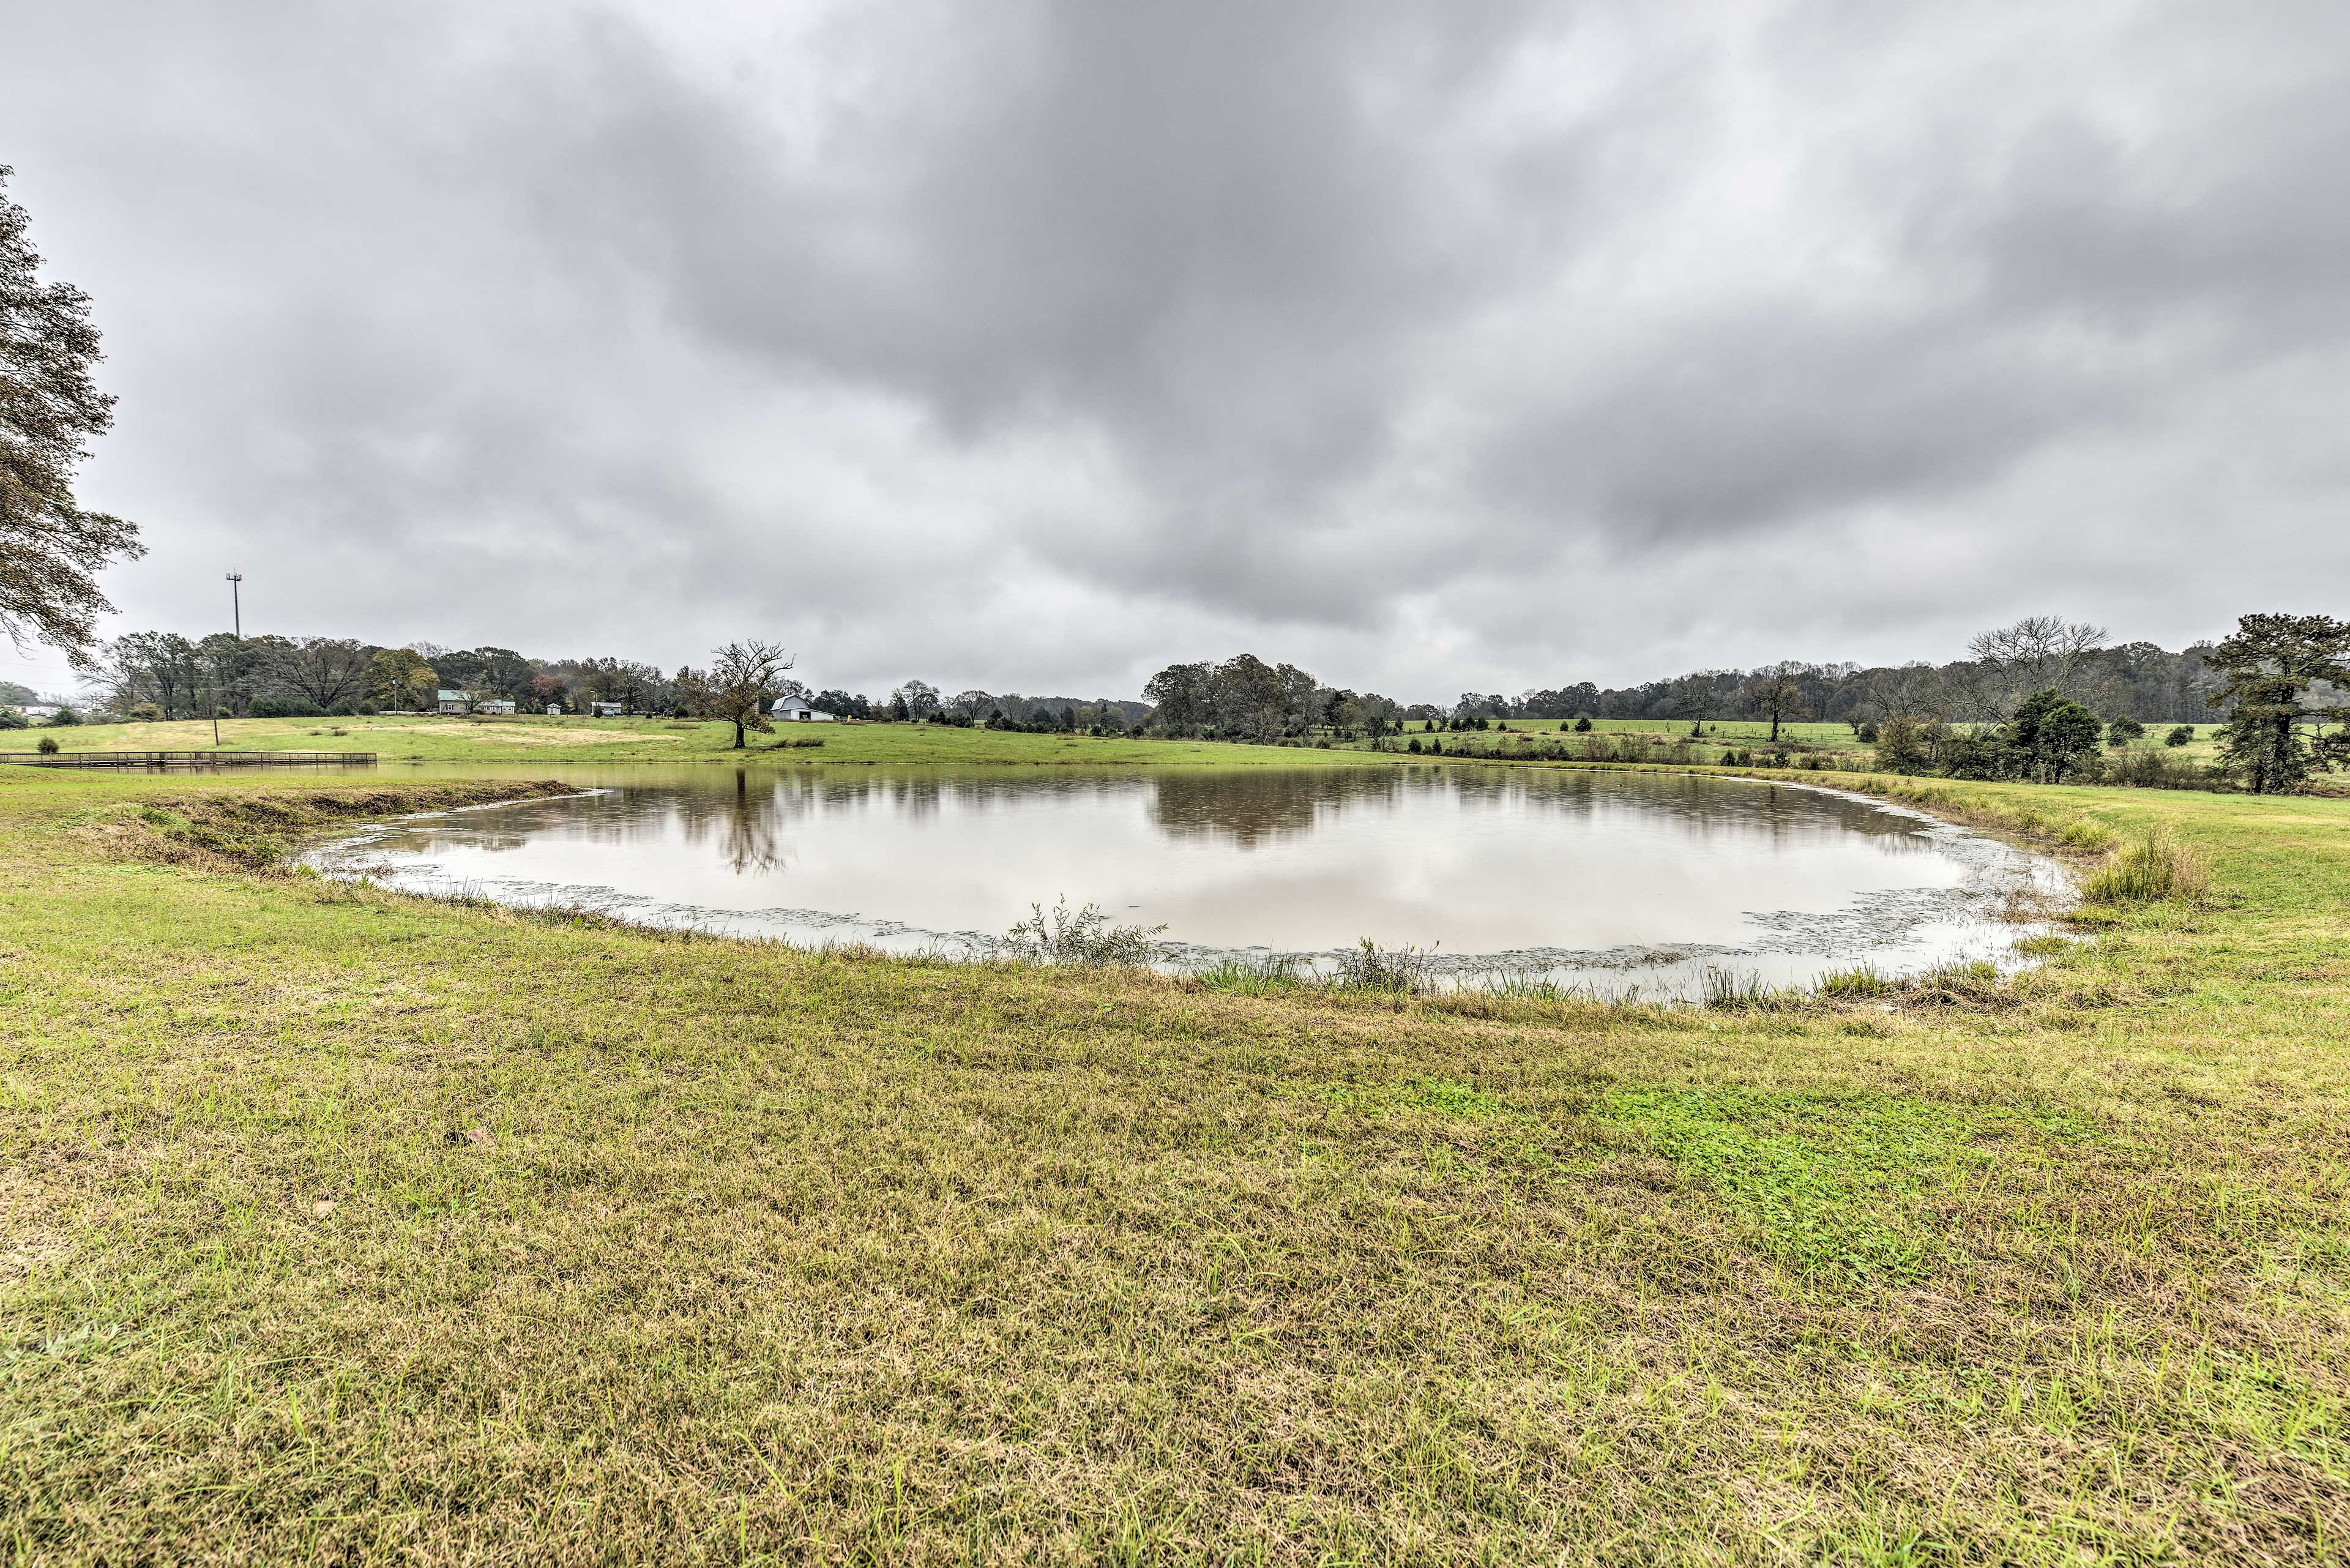 Go fishing or swimming in the 2-acre pond!